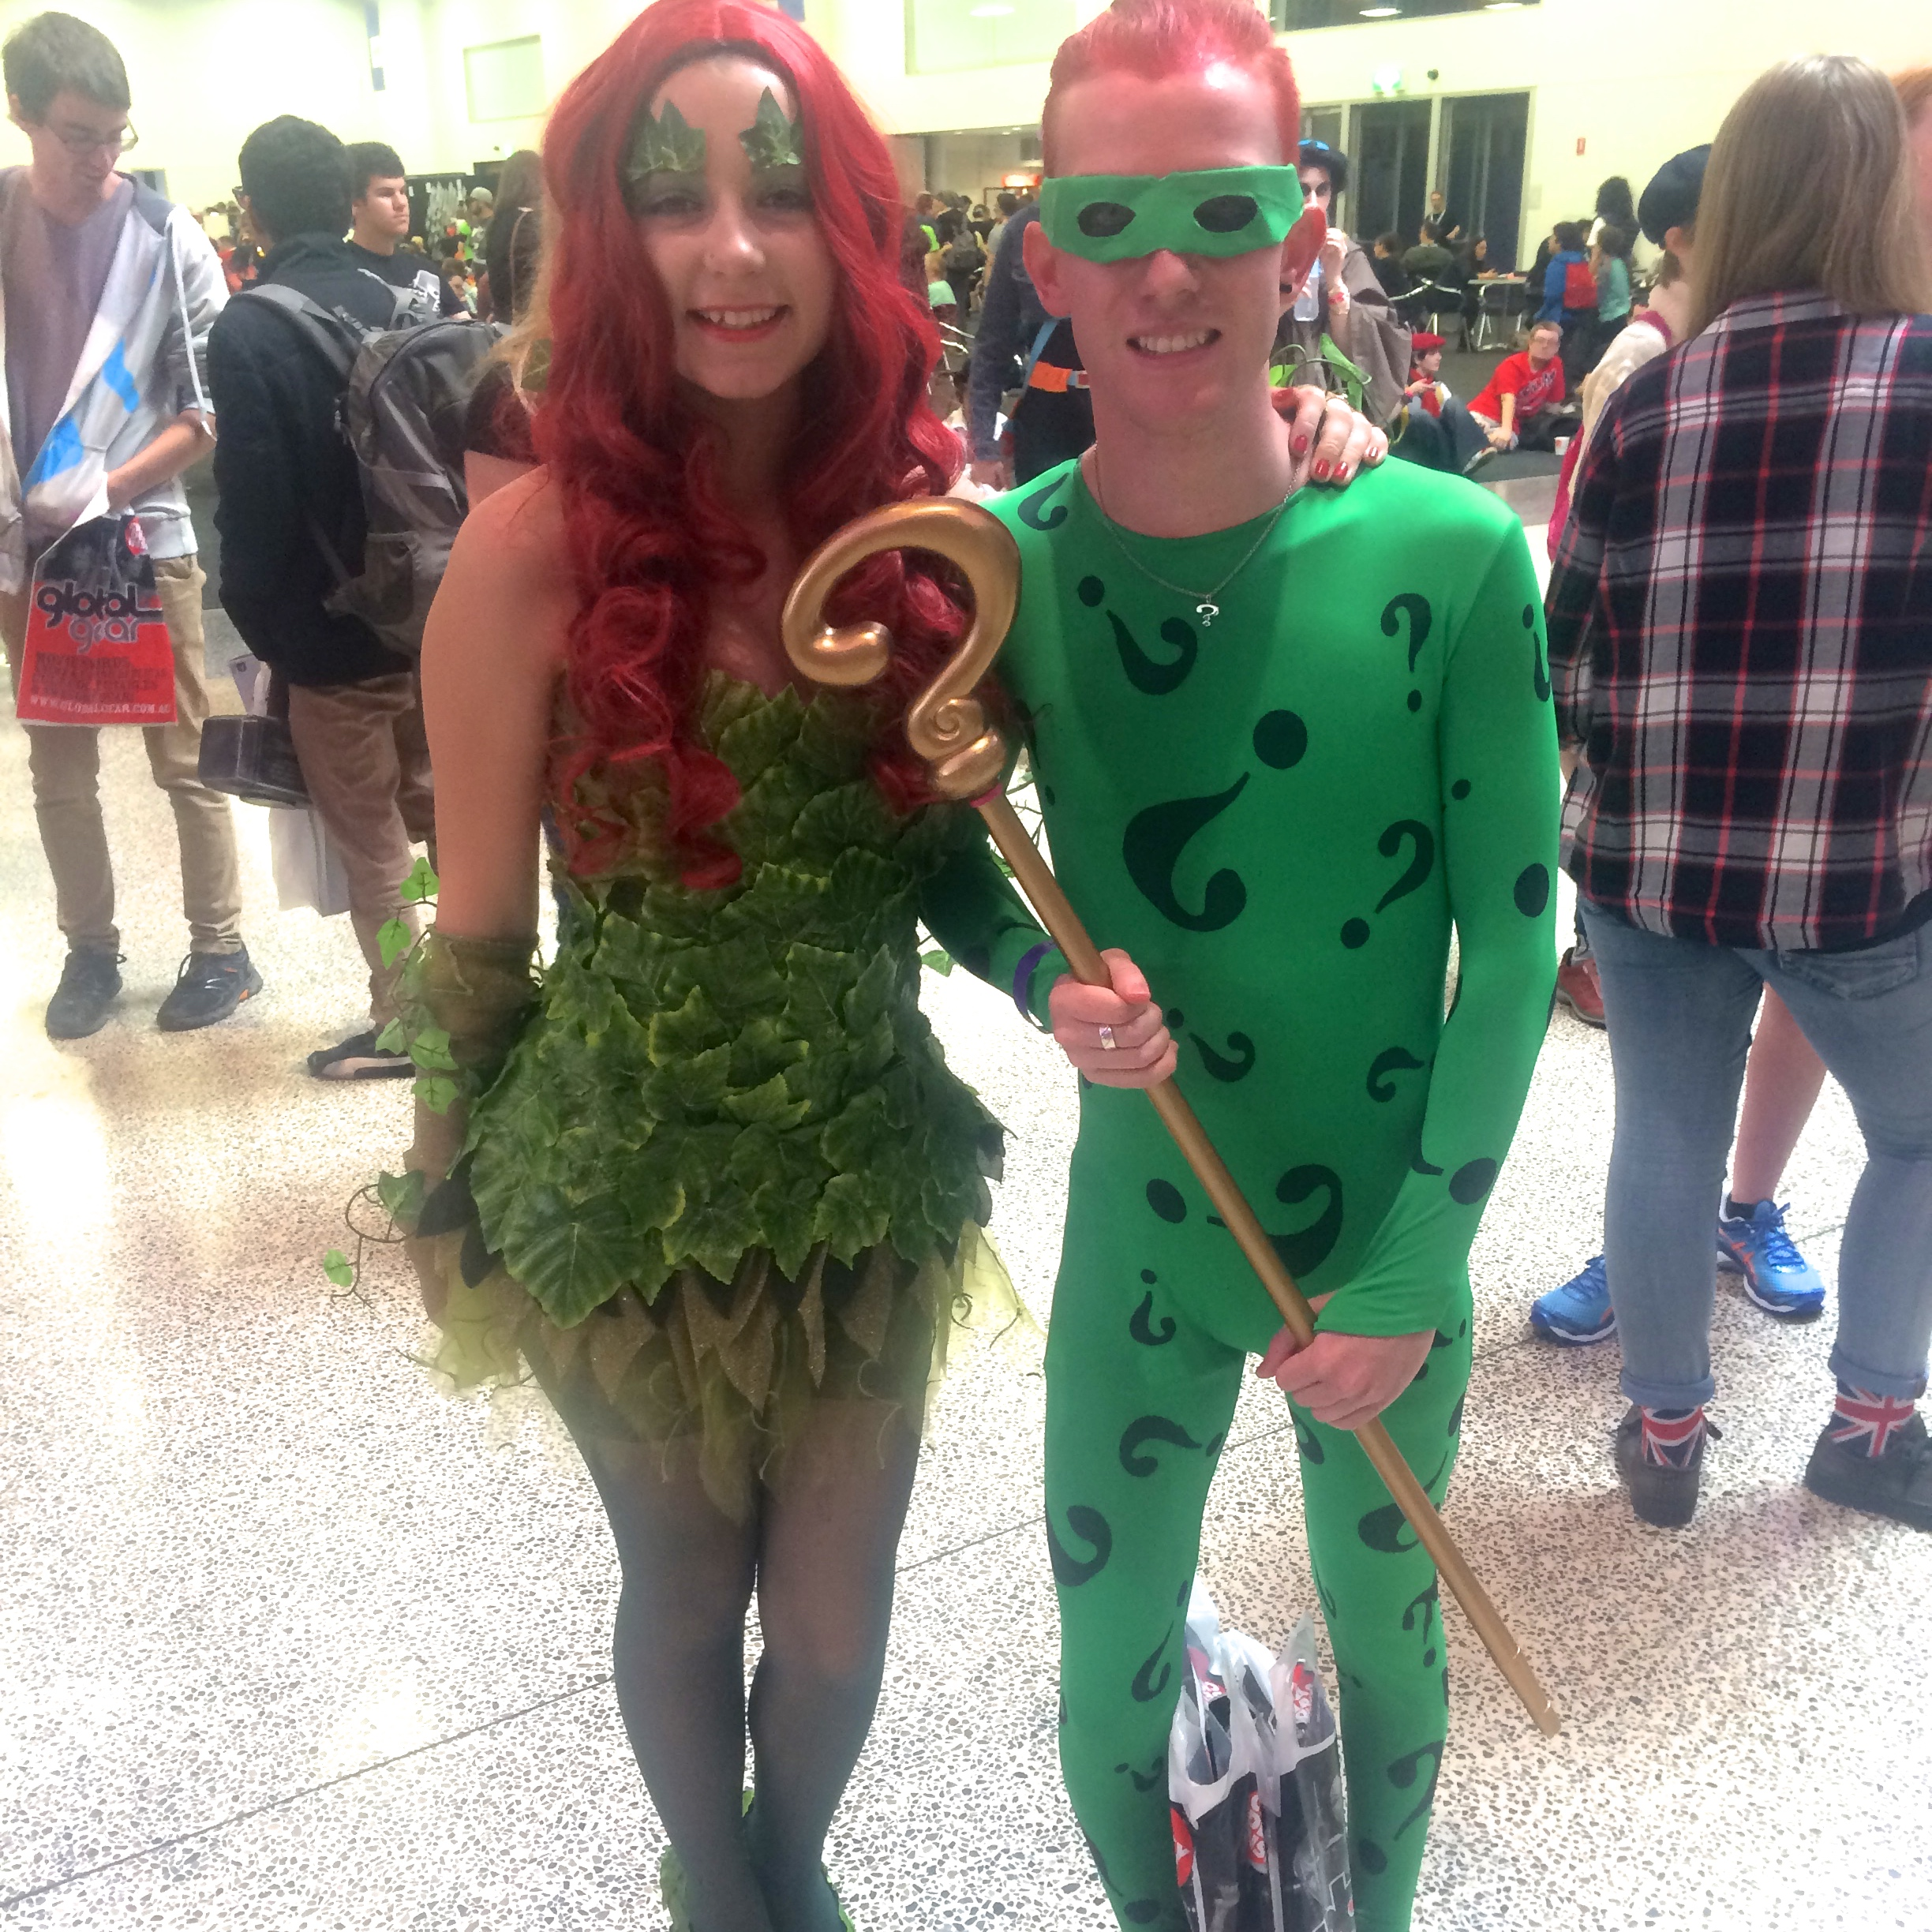 The almost identicalPoison Ivy and The Riddler:a match made in cosplay heaven.